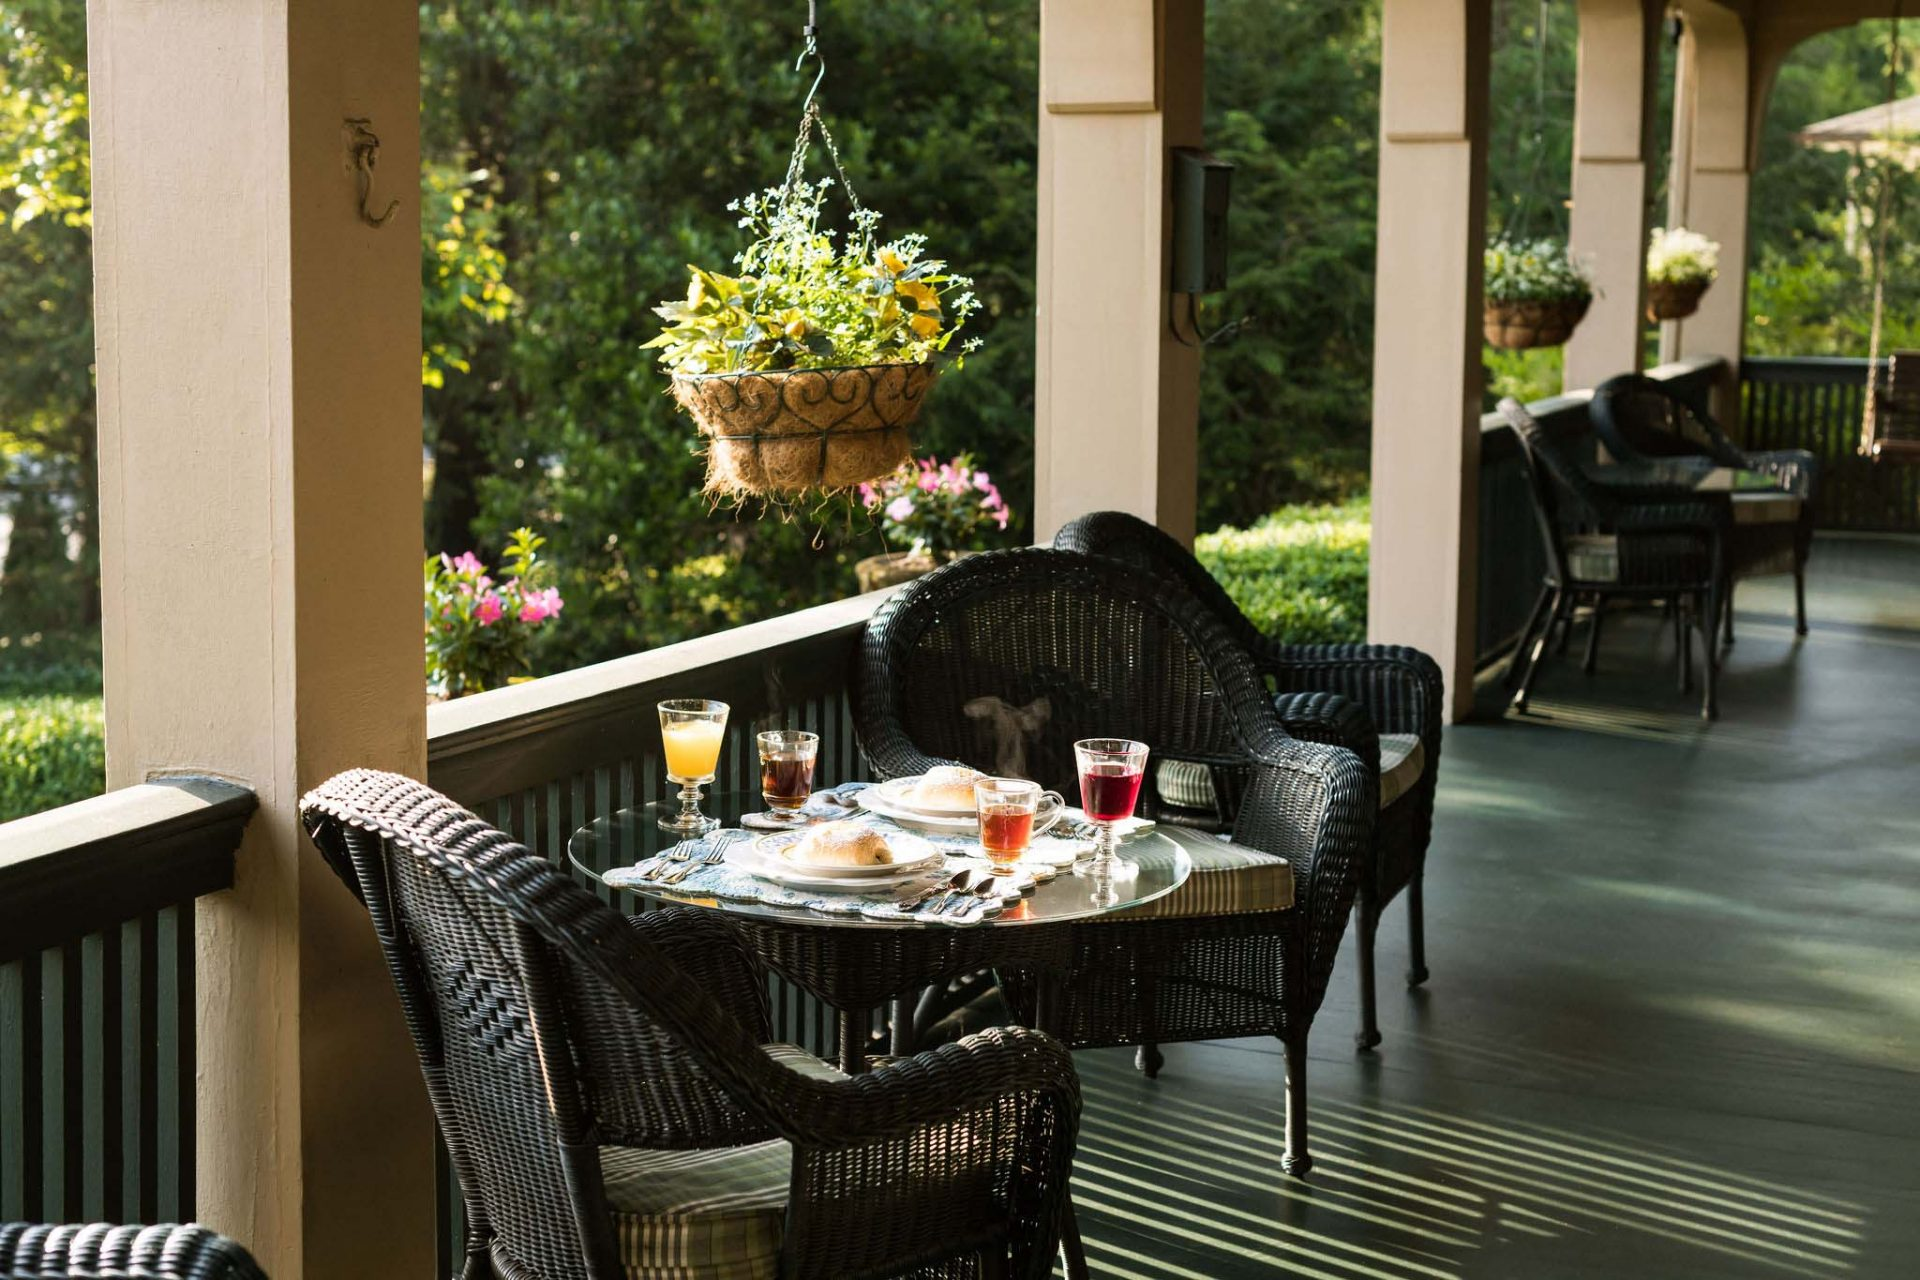 Outdoor breakfast on the bnb's porch. Rattan chairs with a table set for two. A yellow pot hanging from one of the Inn's arches.